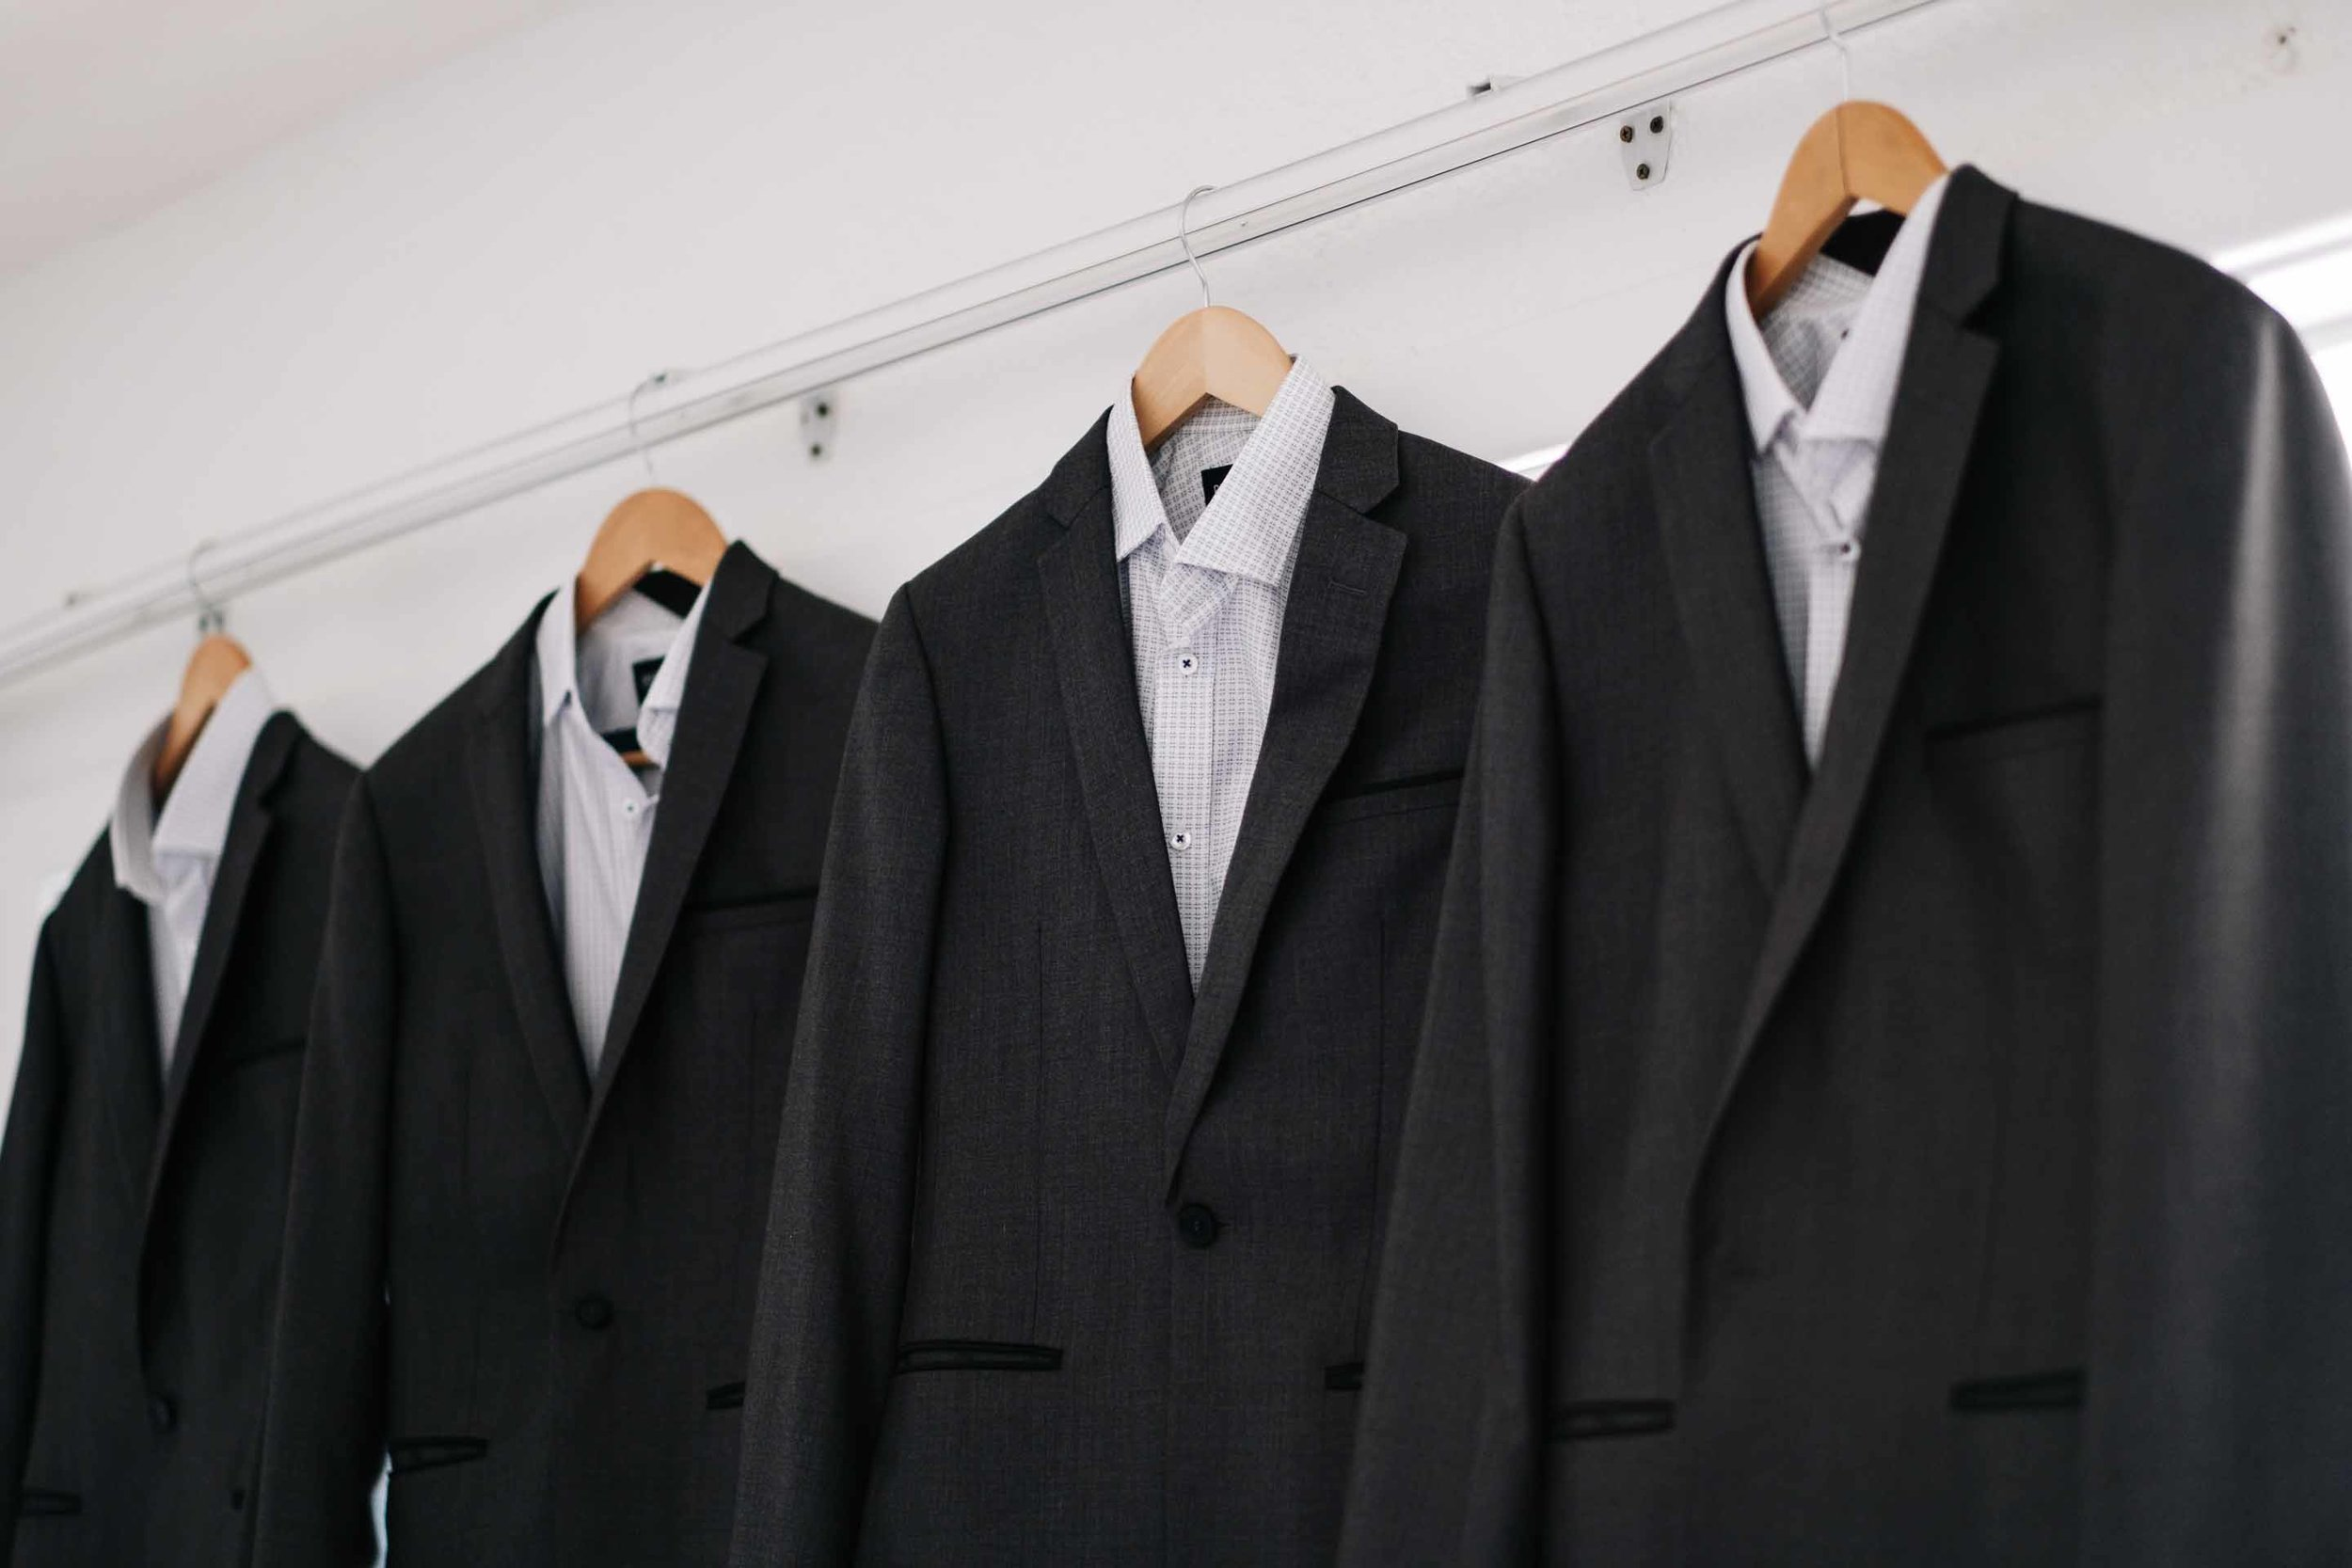 the groom and groomsmen suits hanging from customised wooden hangers